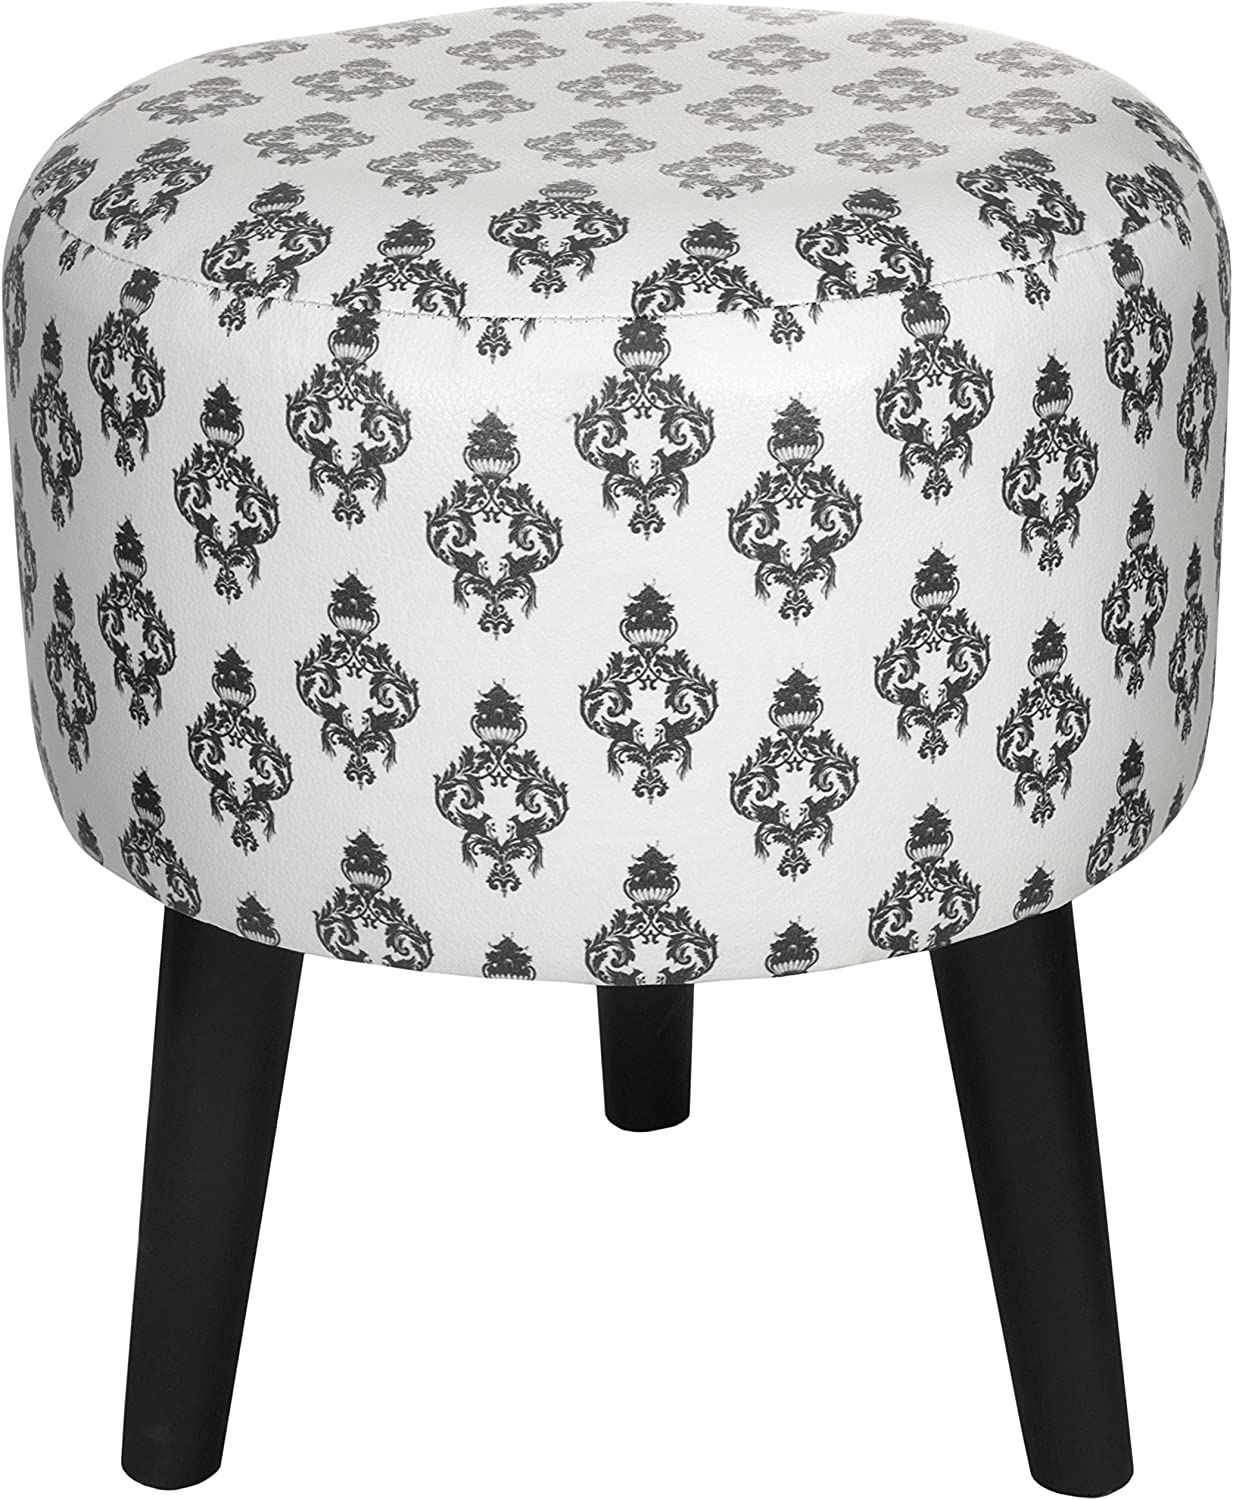 Oriental Furniture CAN-STL-BWDAM-B White Damask Stool, Multicolord